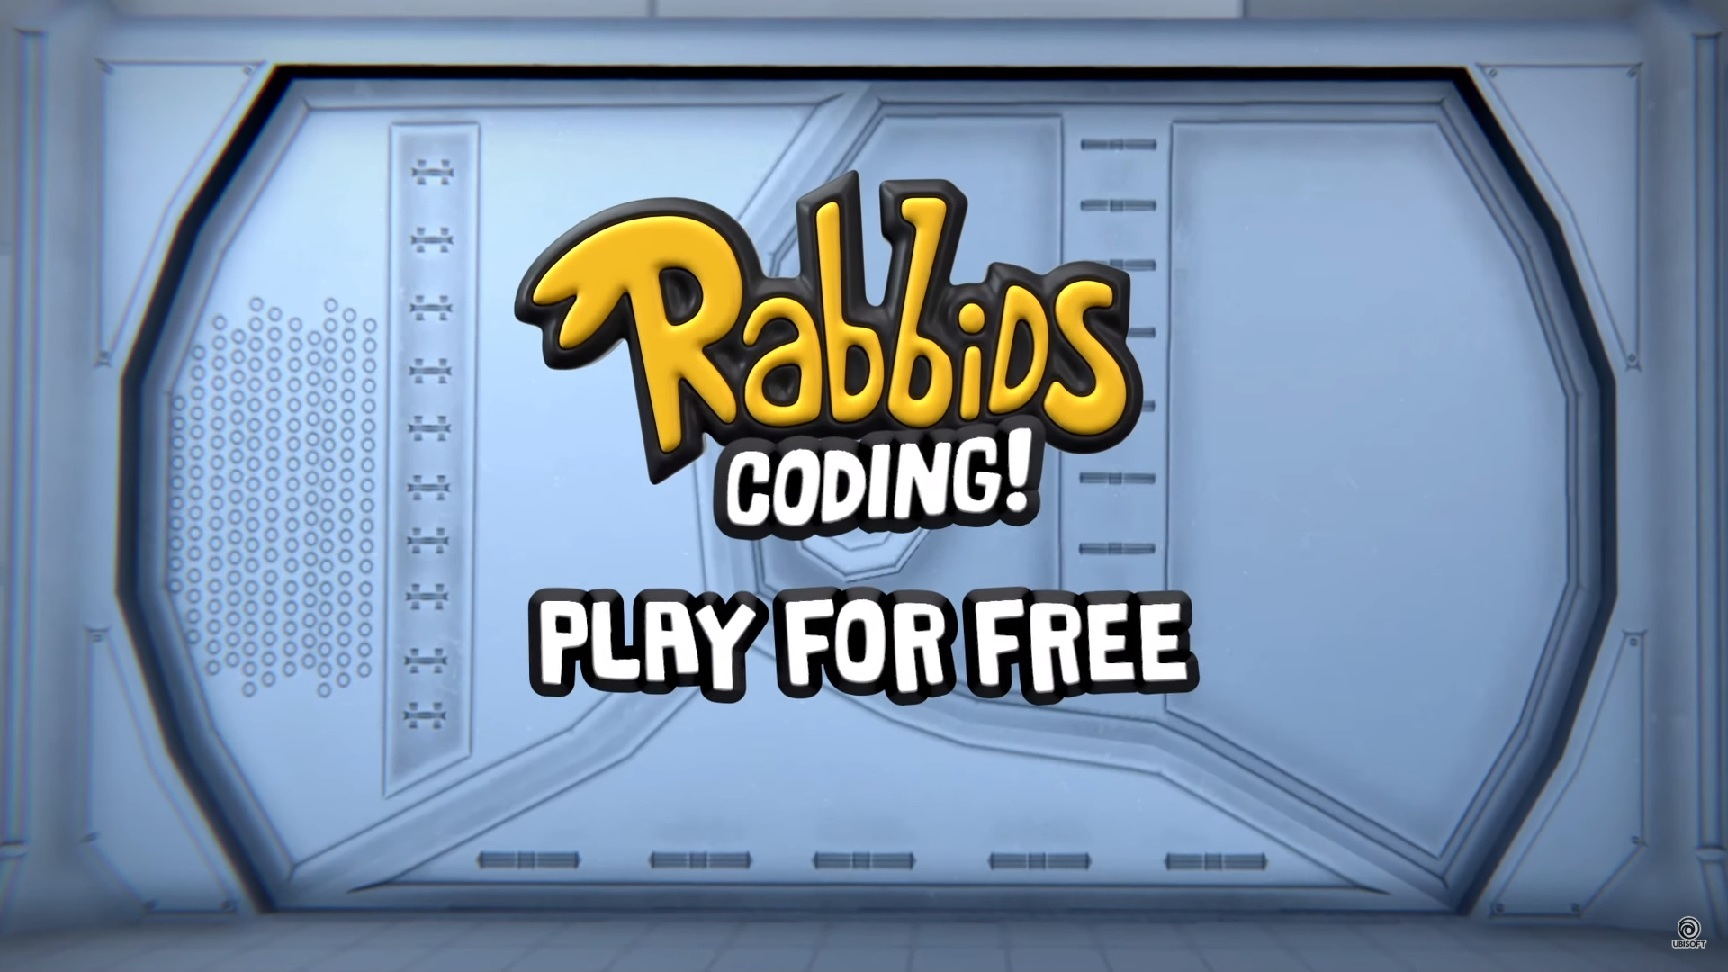 Ubisoft is giving away Rabbids Coding for free